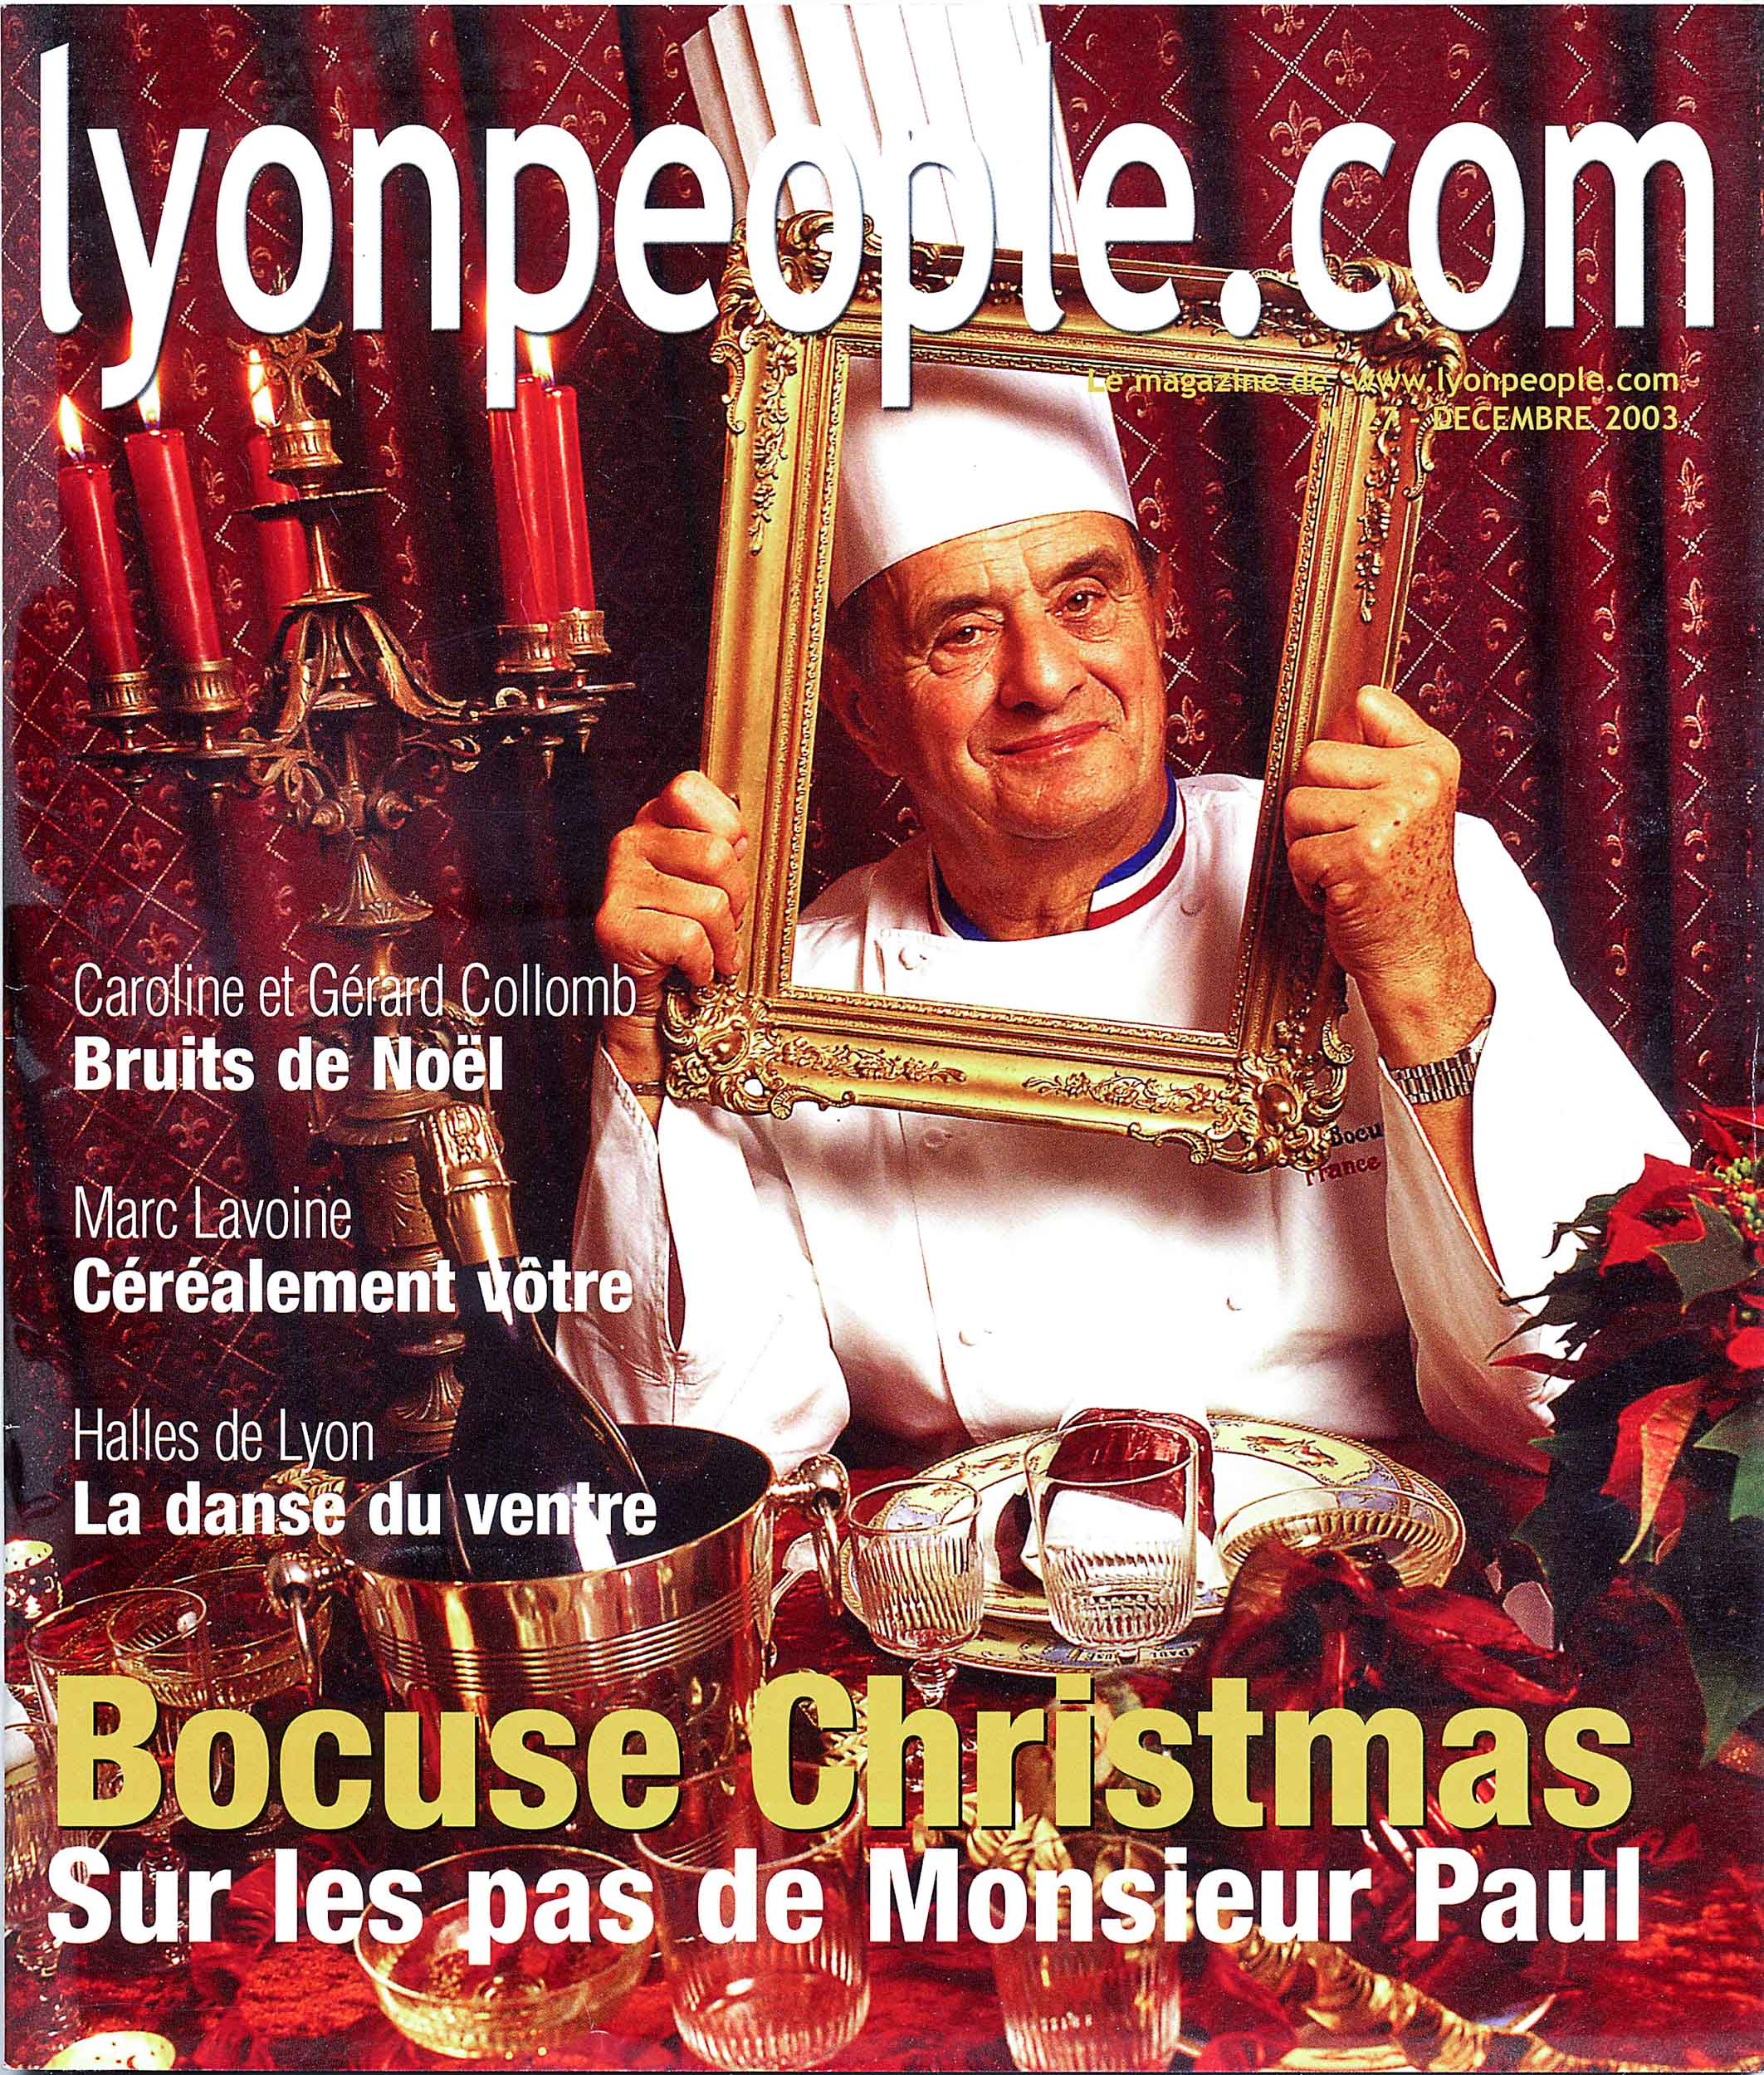 Couv Paul bocuse-9.jpg